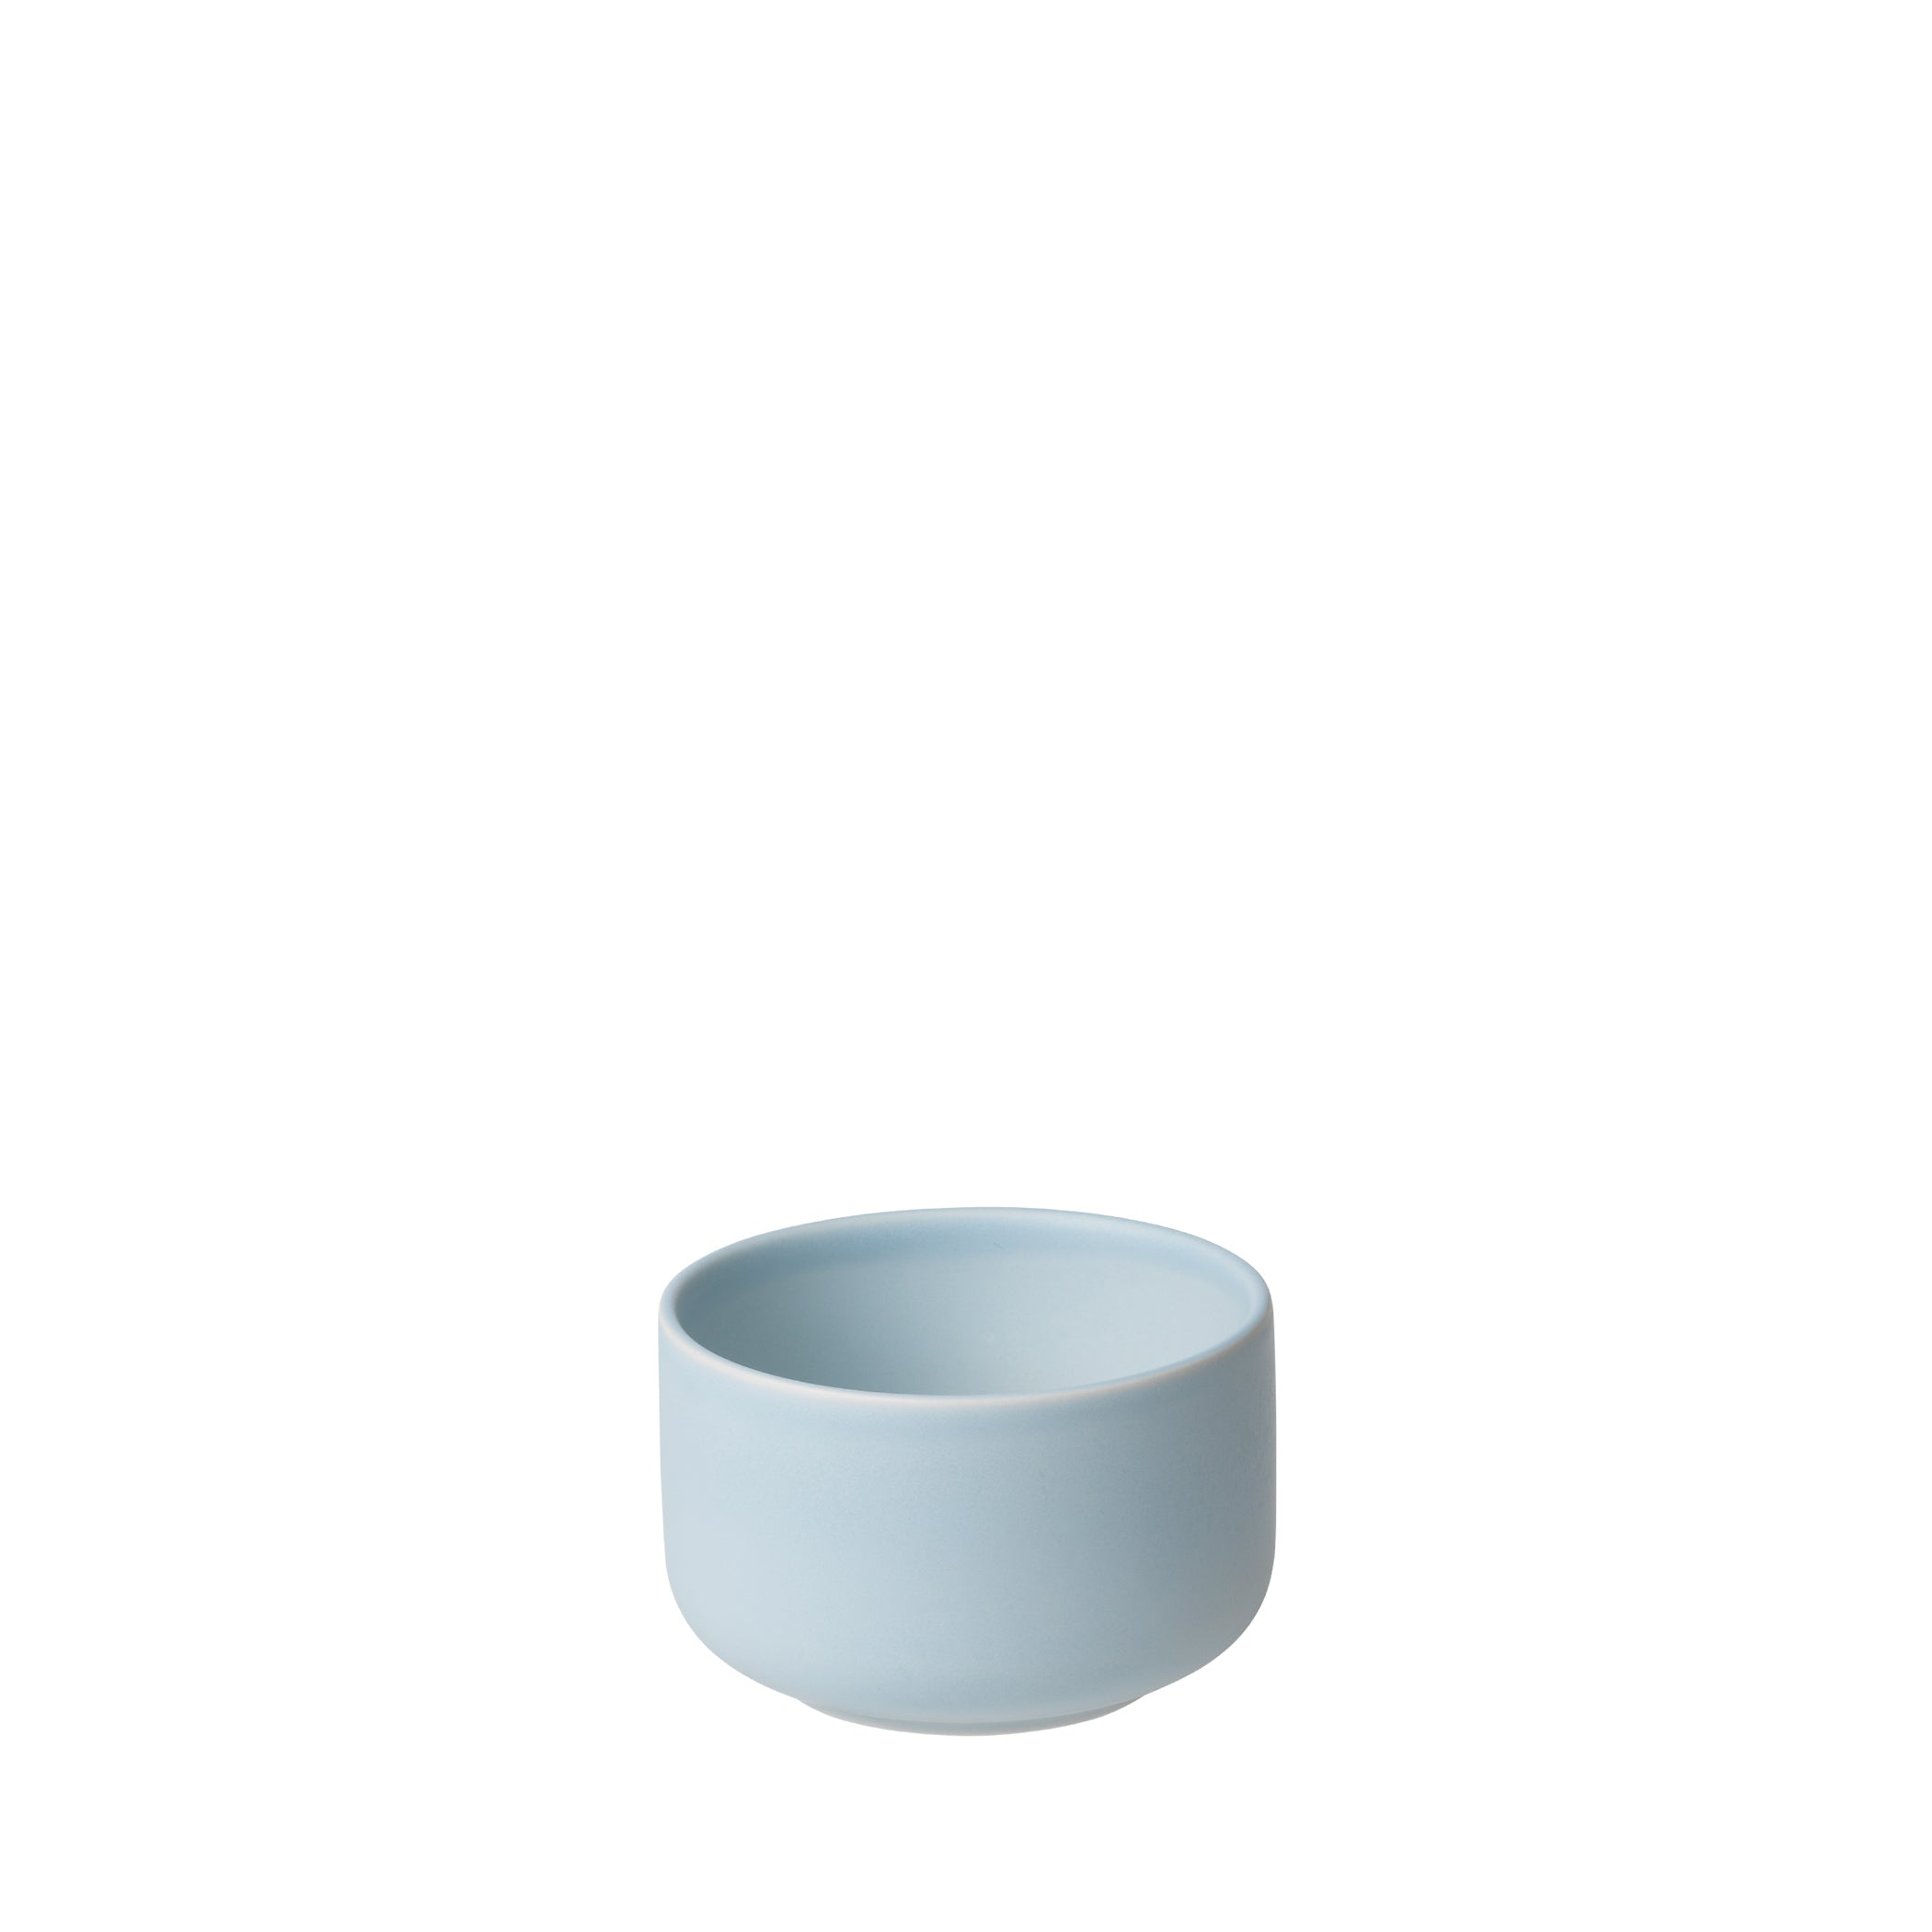 PISU 05 SKY BLUE bowl ceramic